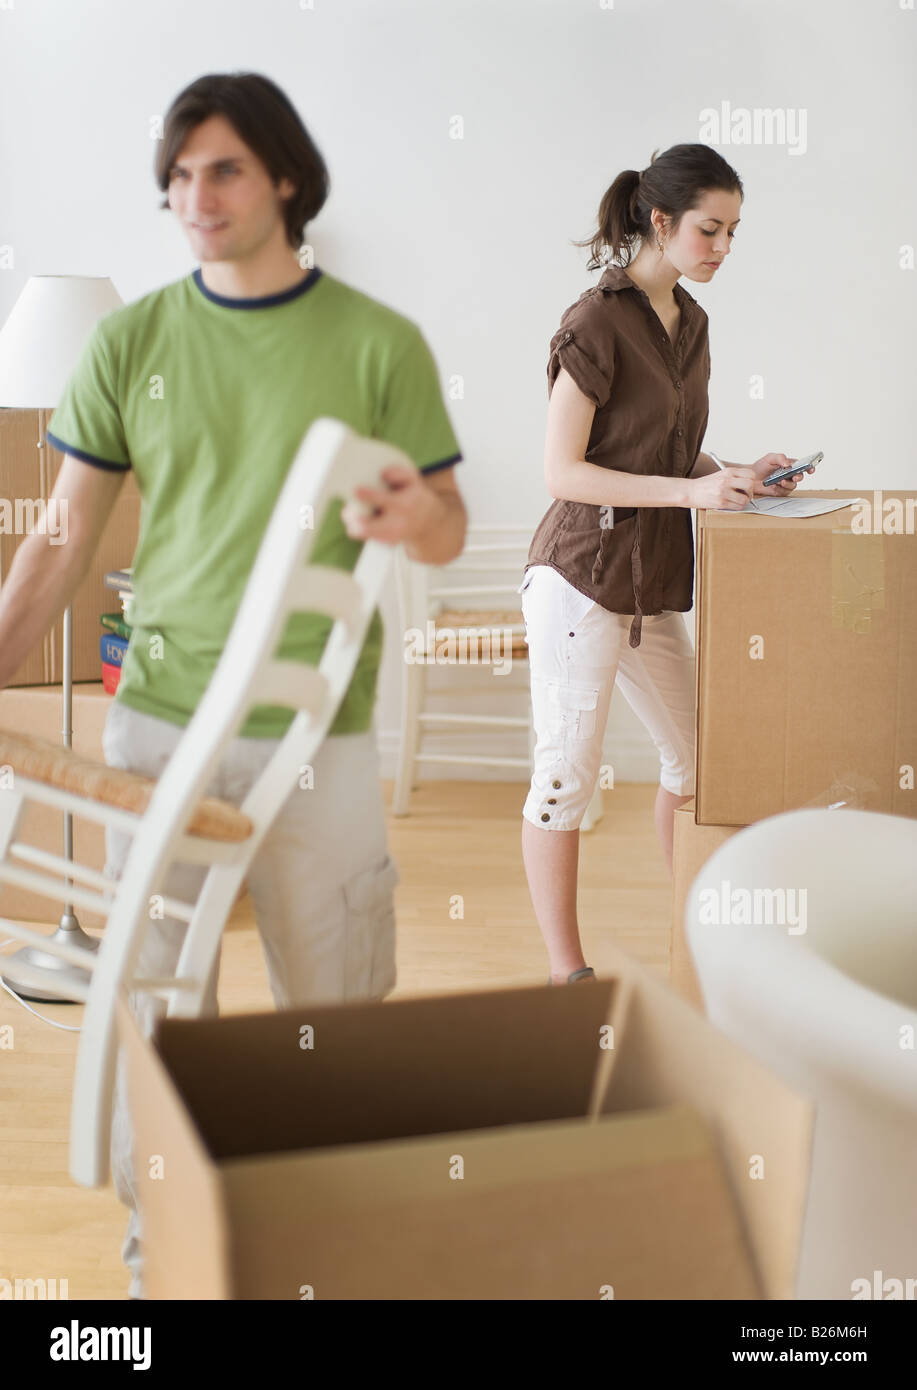 Couple and moving boxes in new home - Stock Image